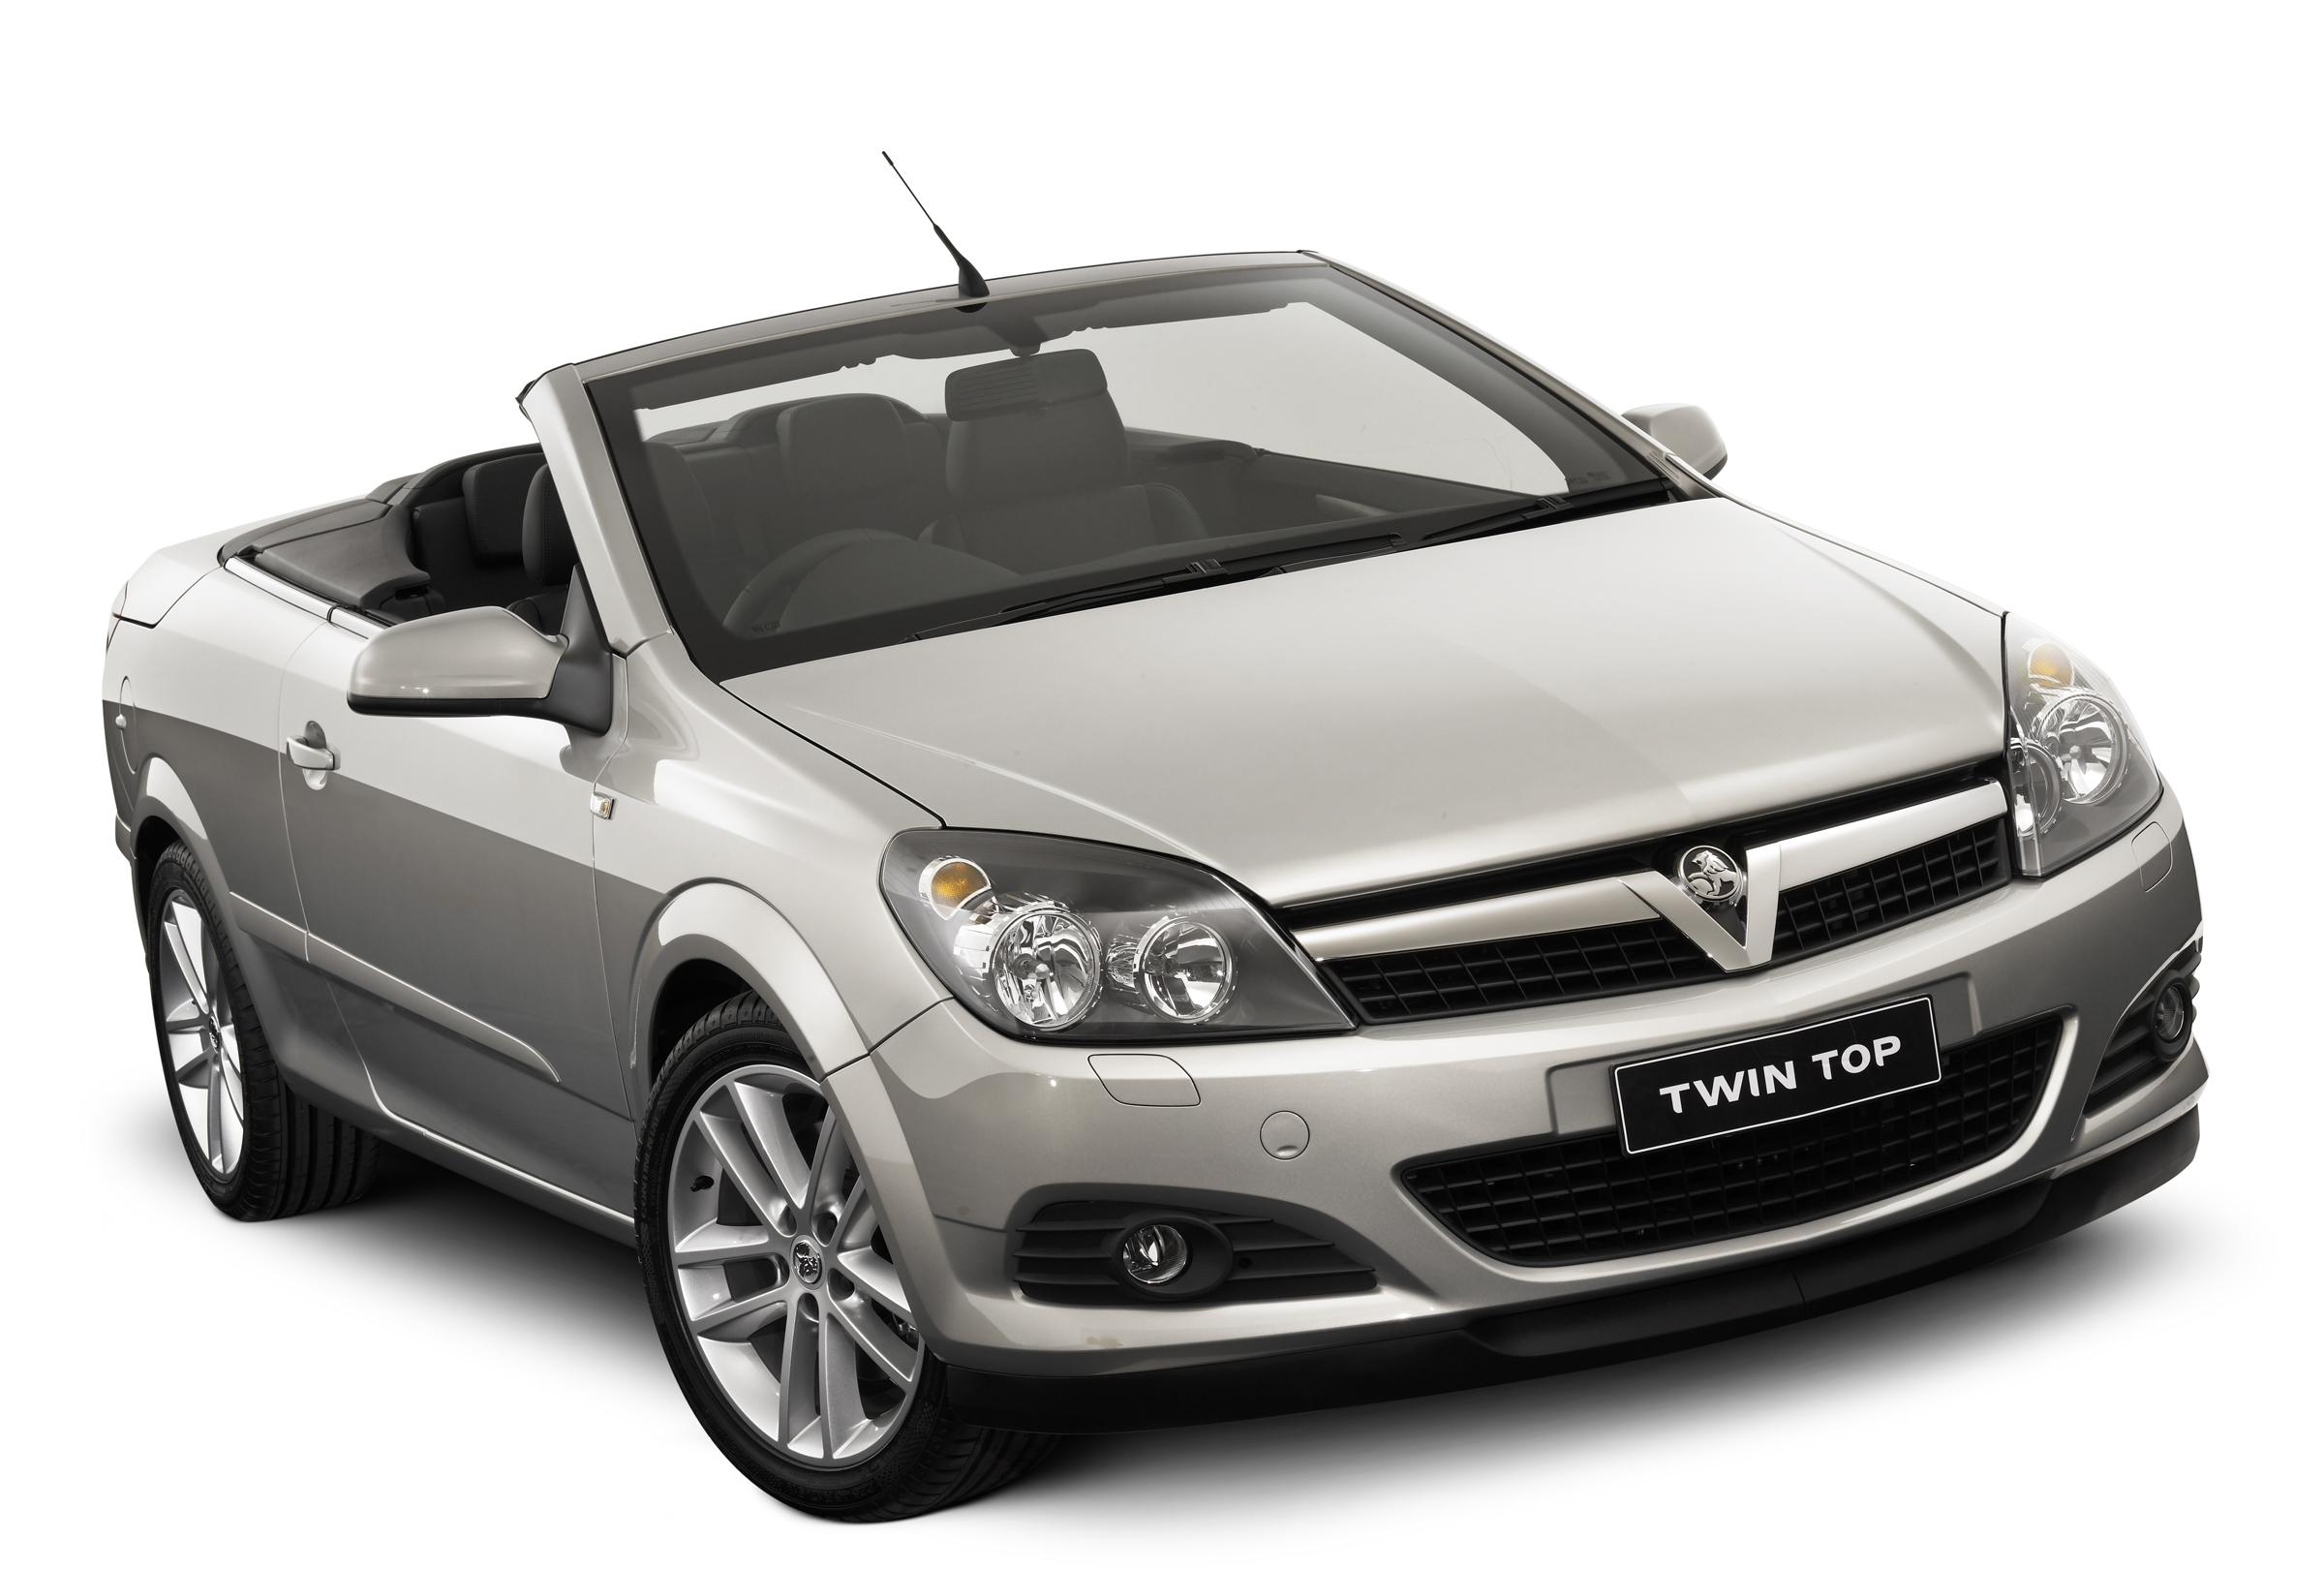 2007 Holden Astra Twintop Review